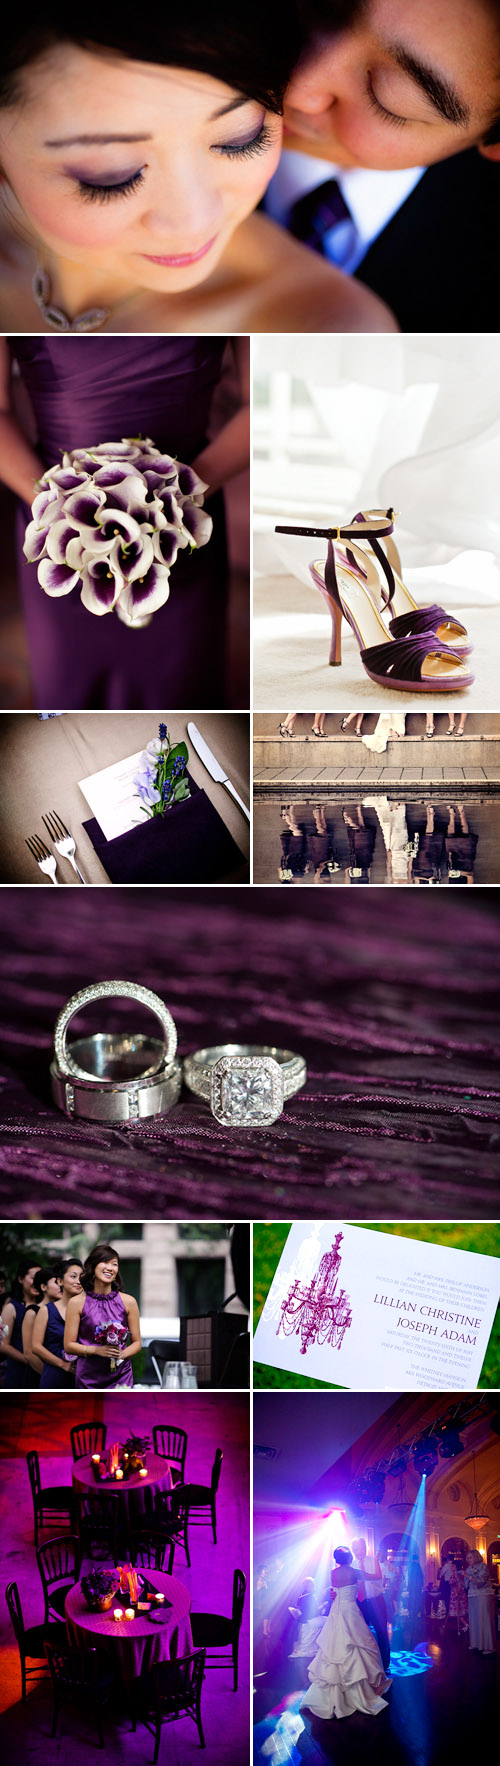 plum and purple wedding color palette - wedding decor and design inspiration